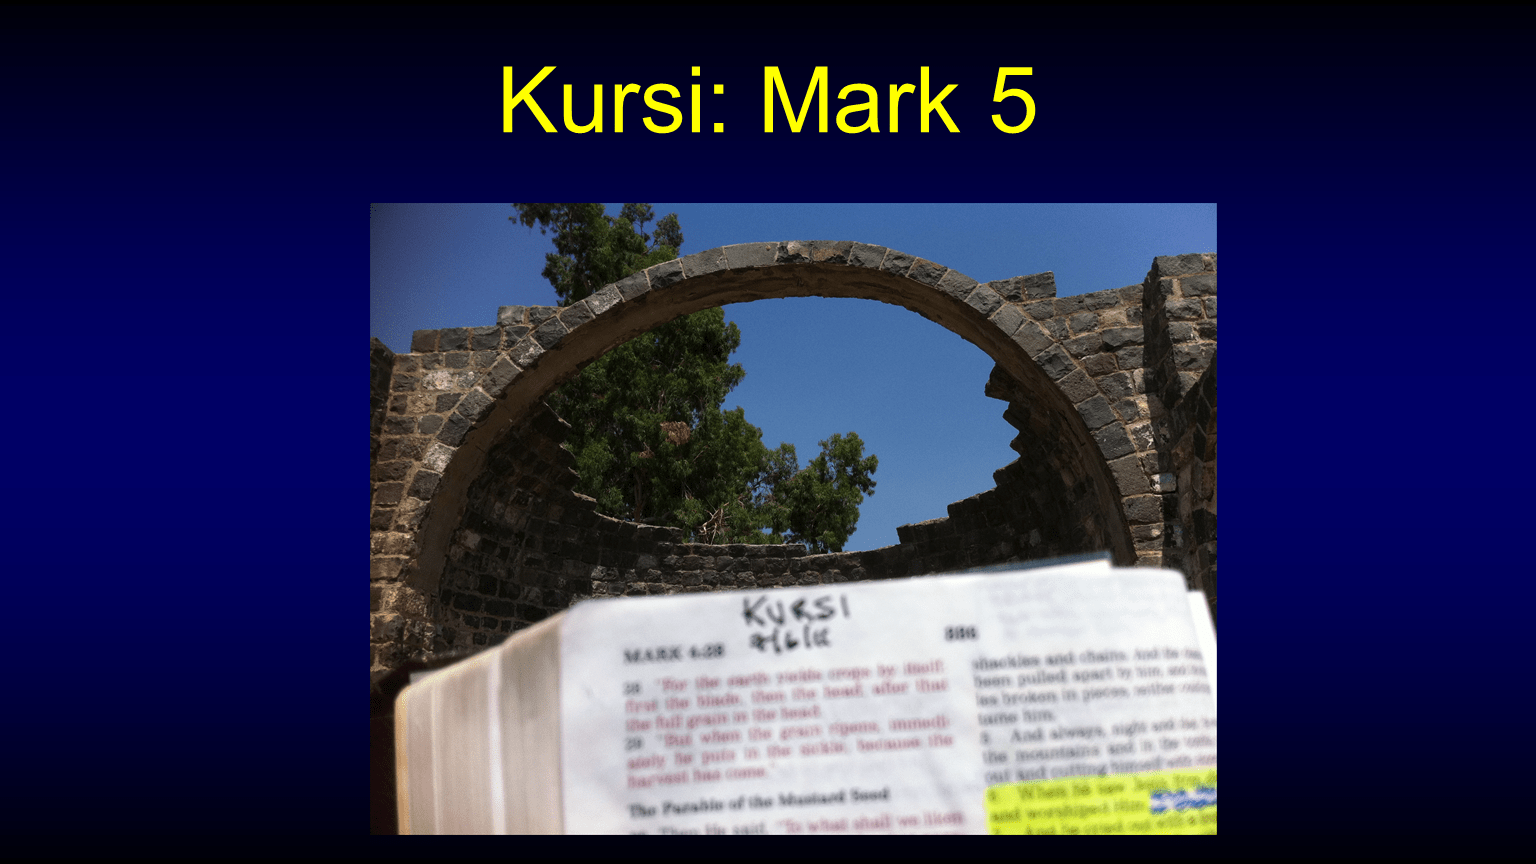 WTB-58 - From Gethsemane To Calvary - Pictures From The Land Of The Book (14)